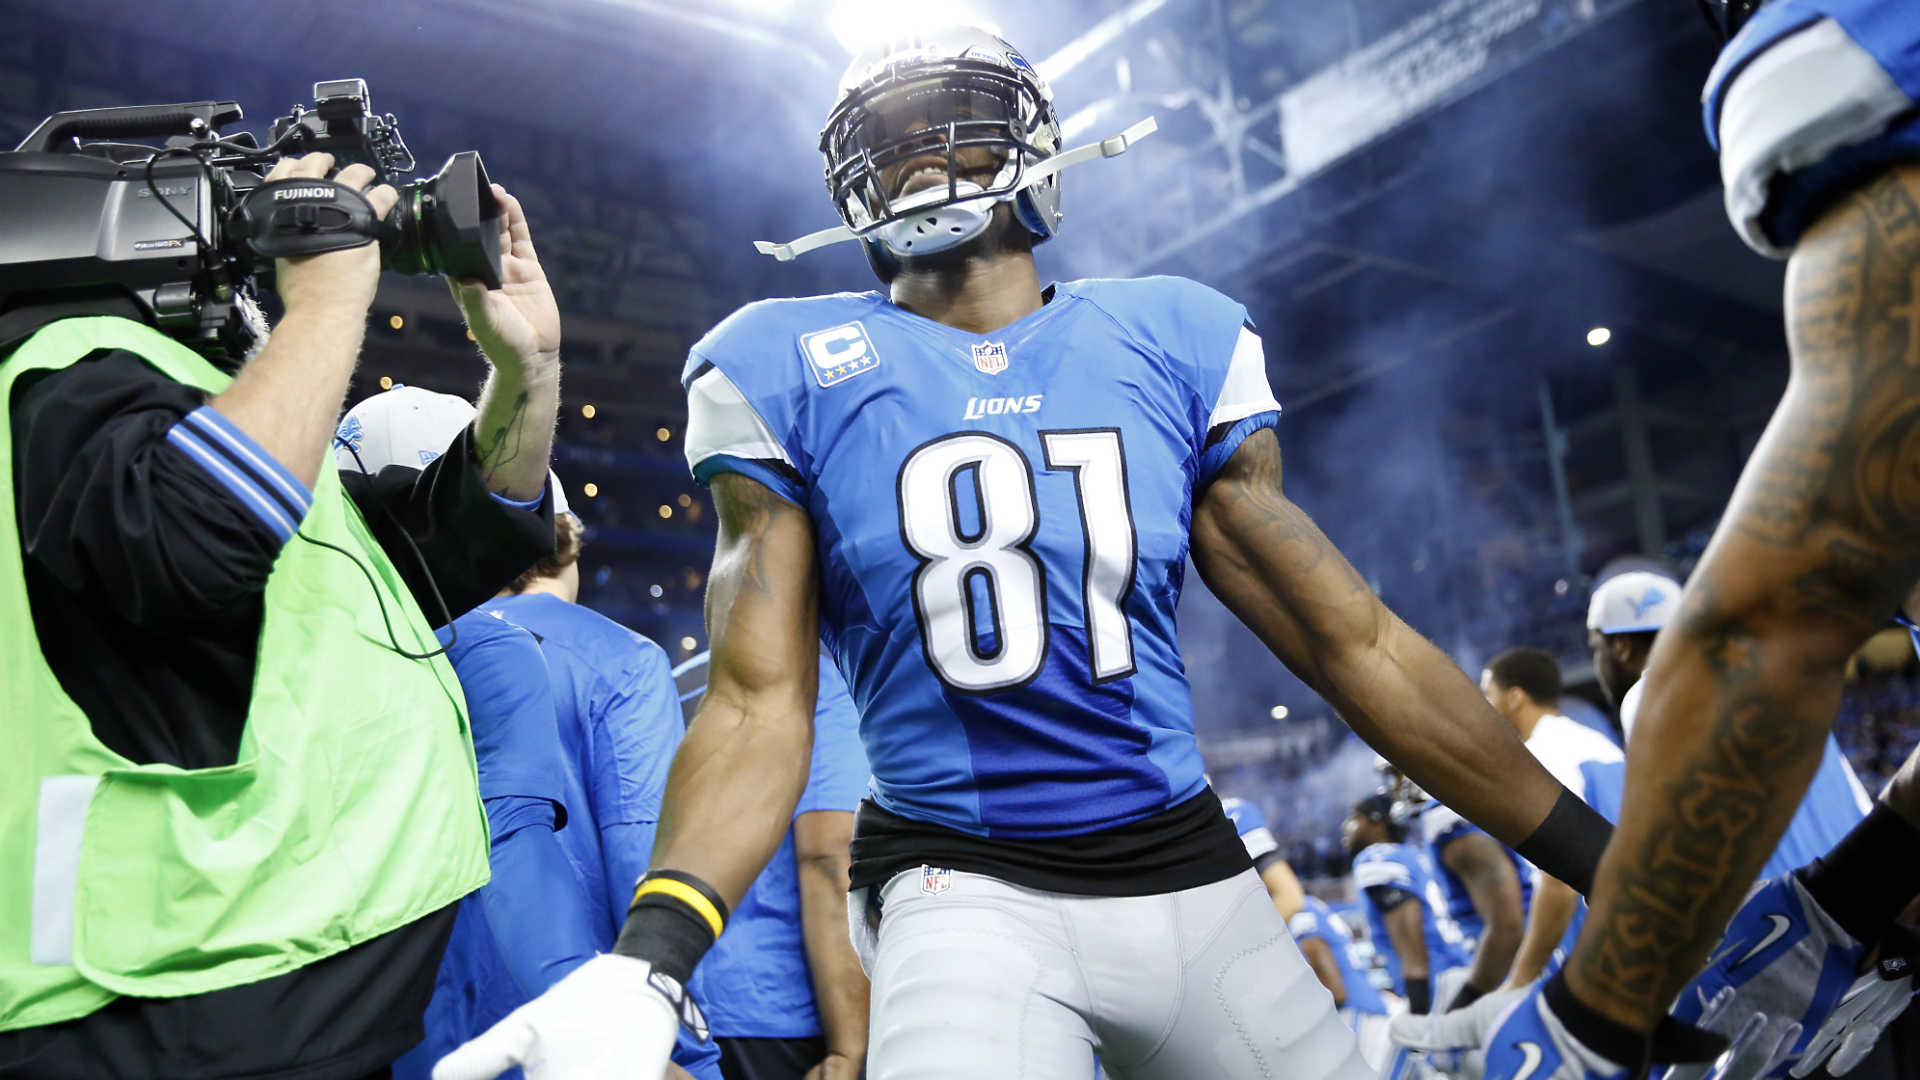 Early fantasy football rankings: Top 12 wide receivers for 2014